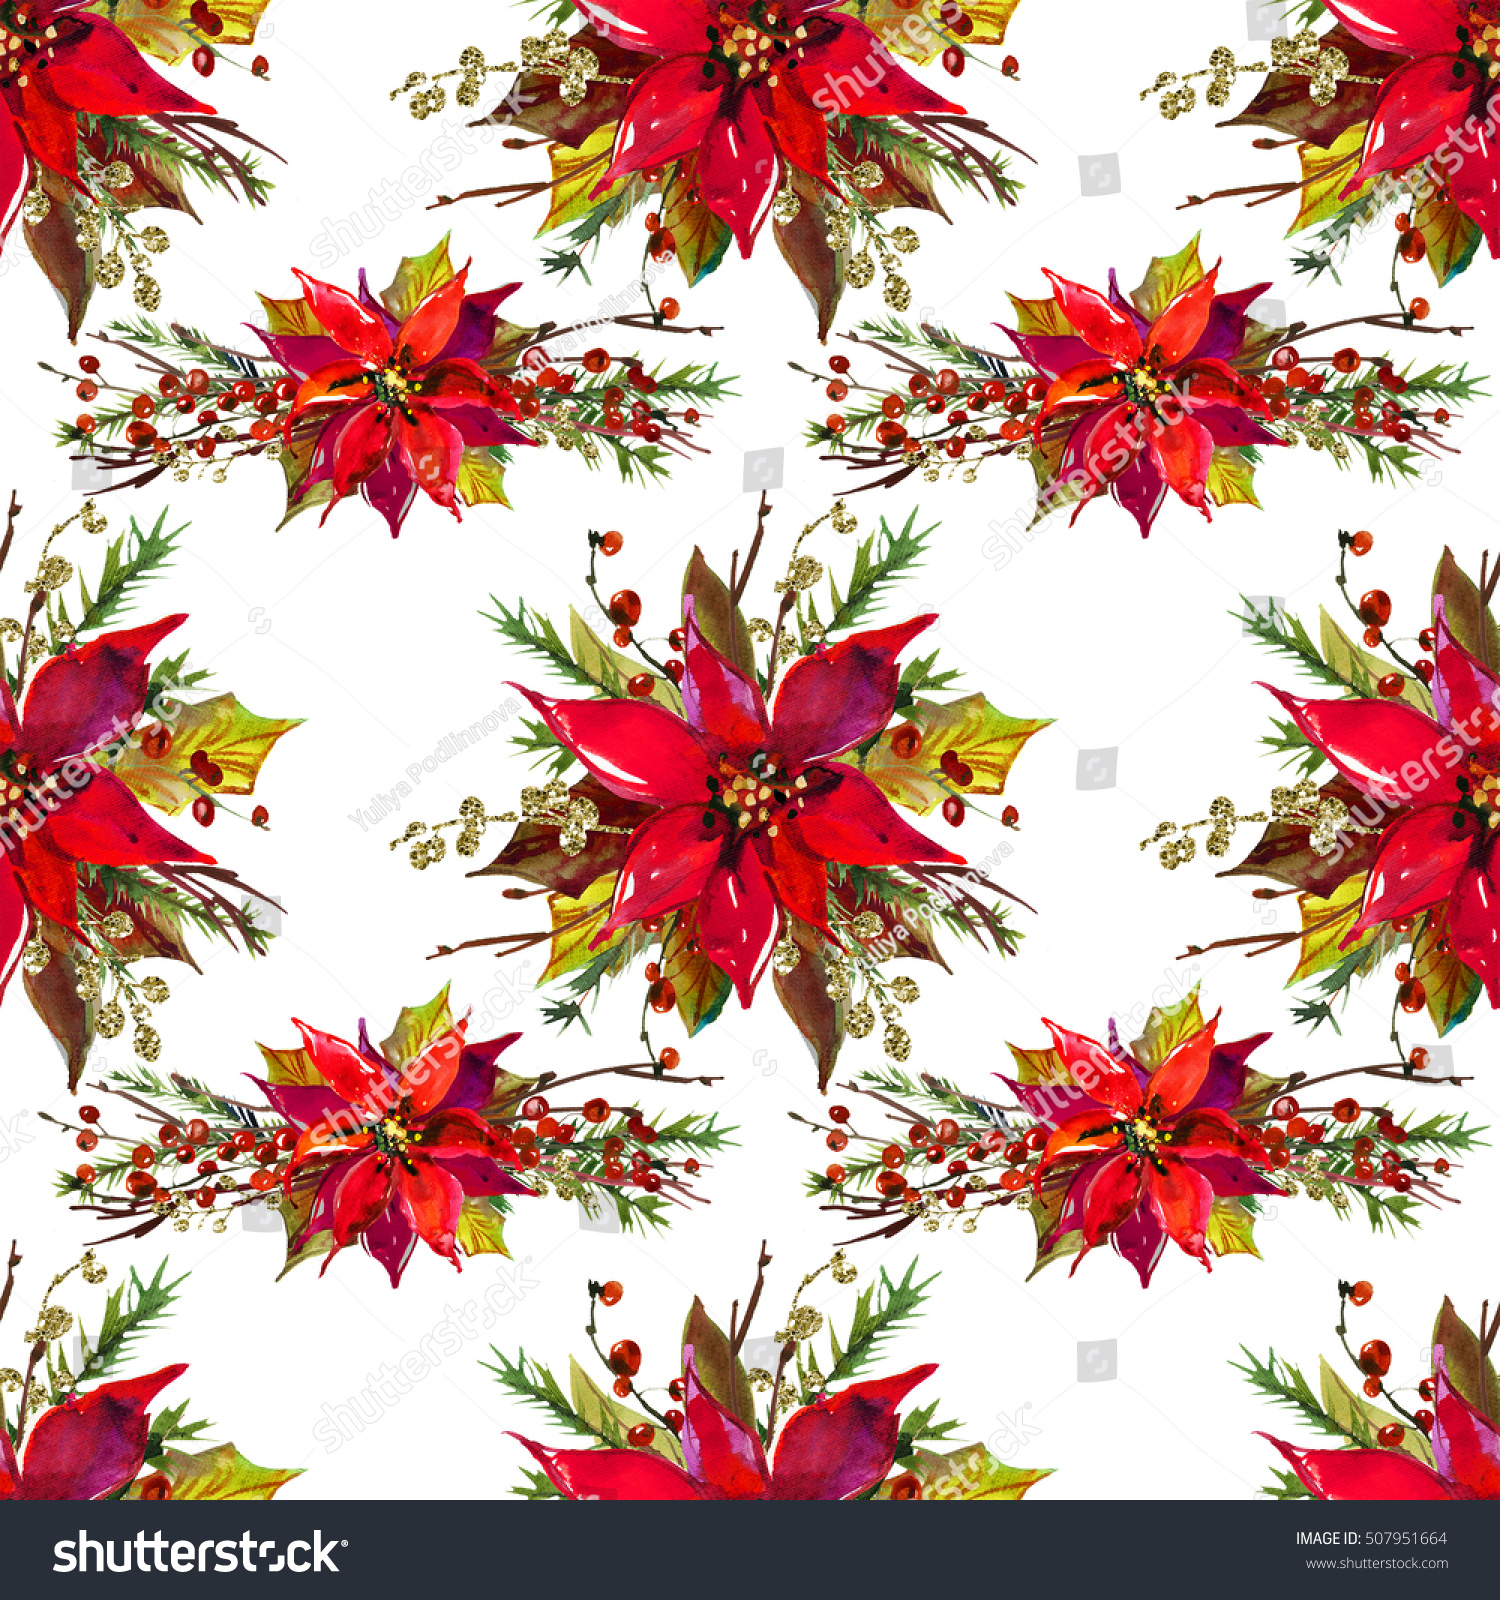 Christmas watercolor floral bouquet pretty flowers stock christmas watercolor floral bouquet pretty flowers seamless pattern paper template on white background izmirmasajfo